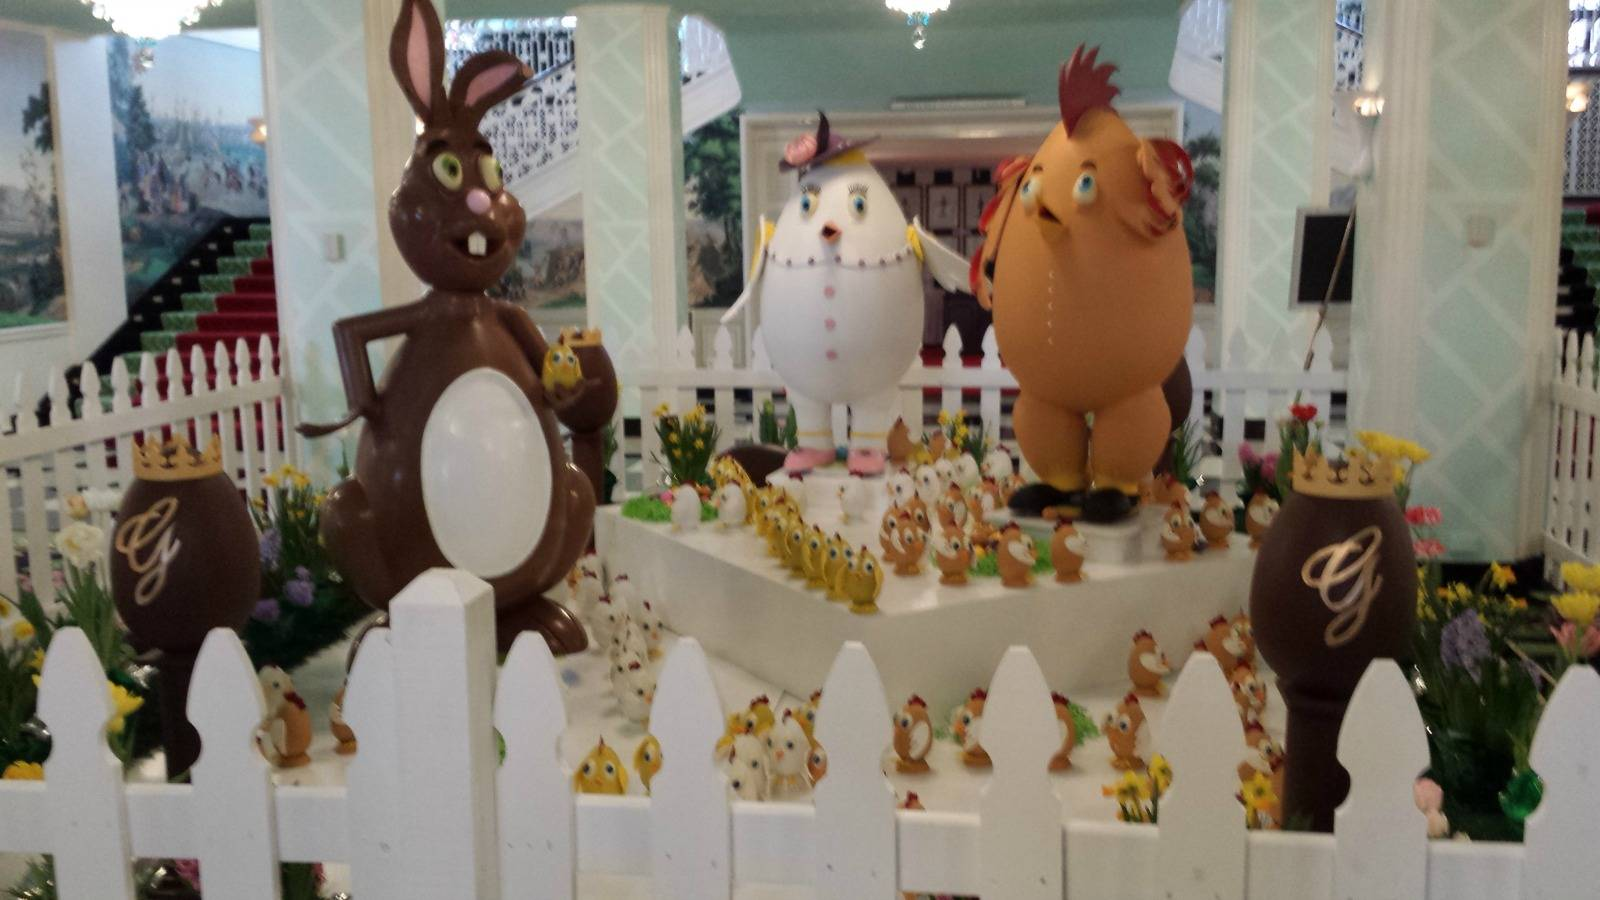 This is not in the window, but it is also a yummy chocolate display for Easter.